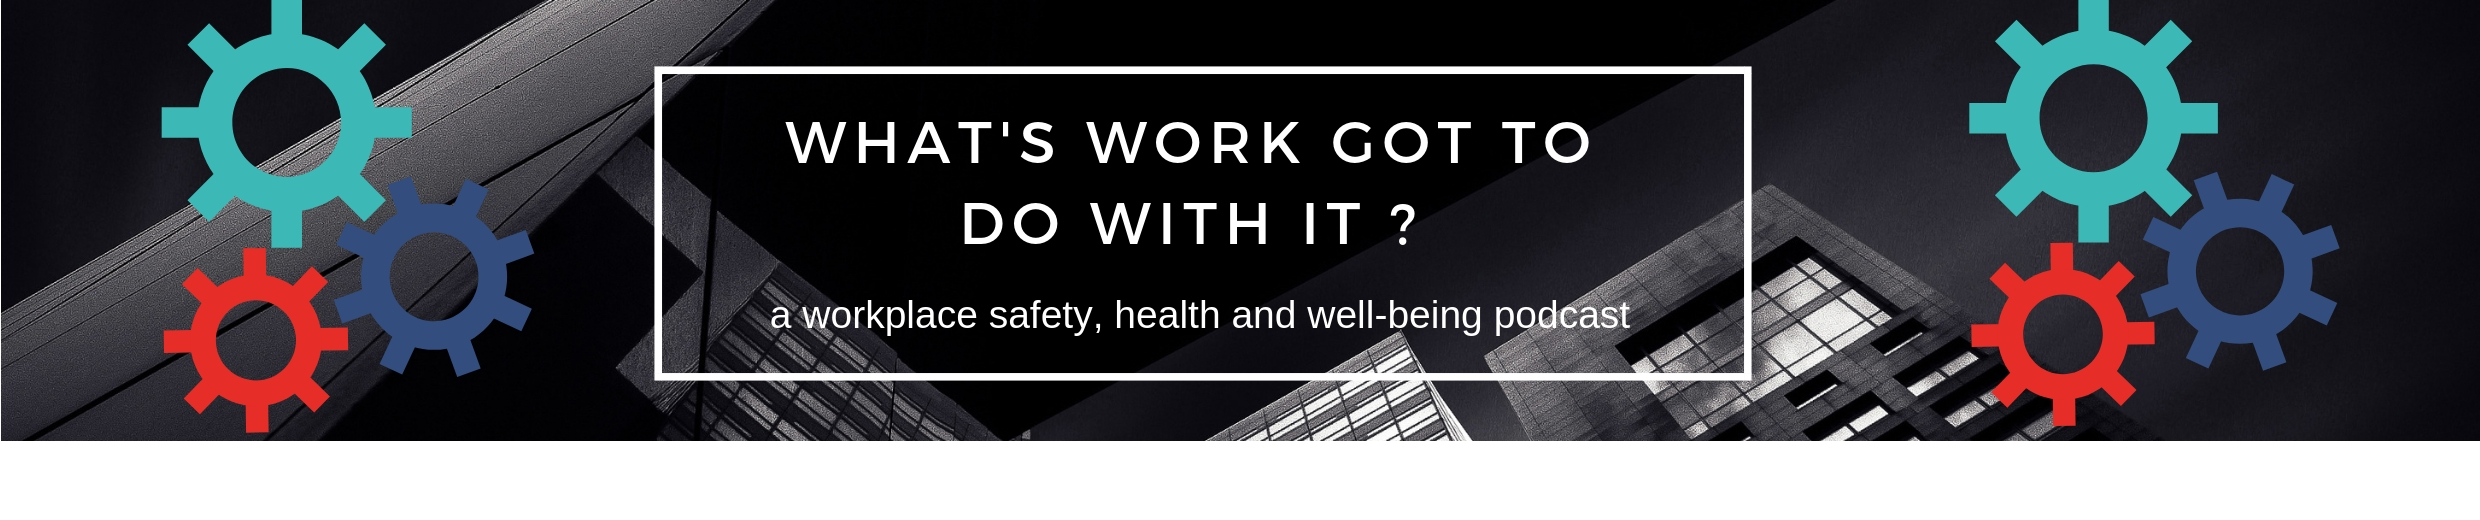 What's work got to do with it? Workplace safety, health and well-being podcast